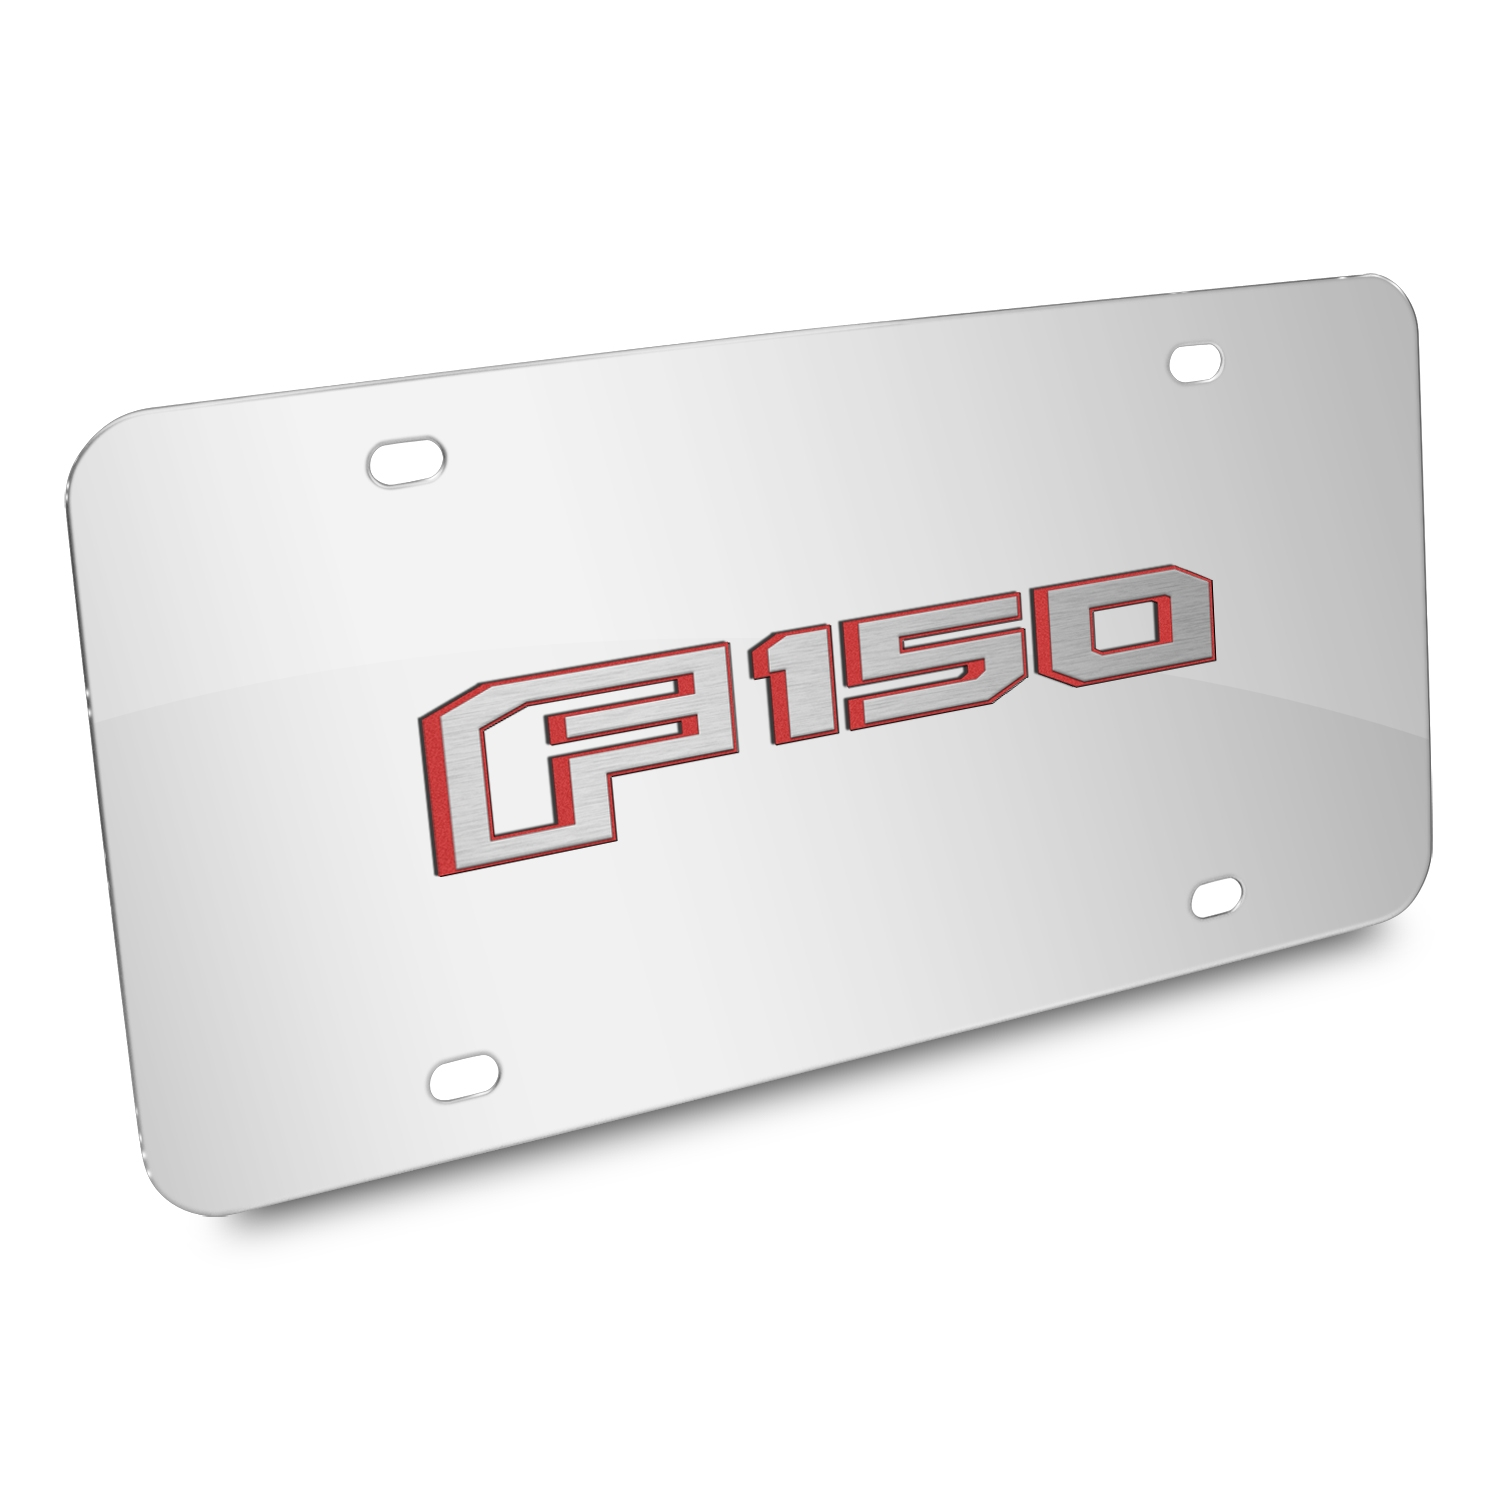 Ford F150 in Red 2015 up 3D Mirror Chrome Stainless Steel License Plate